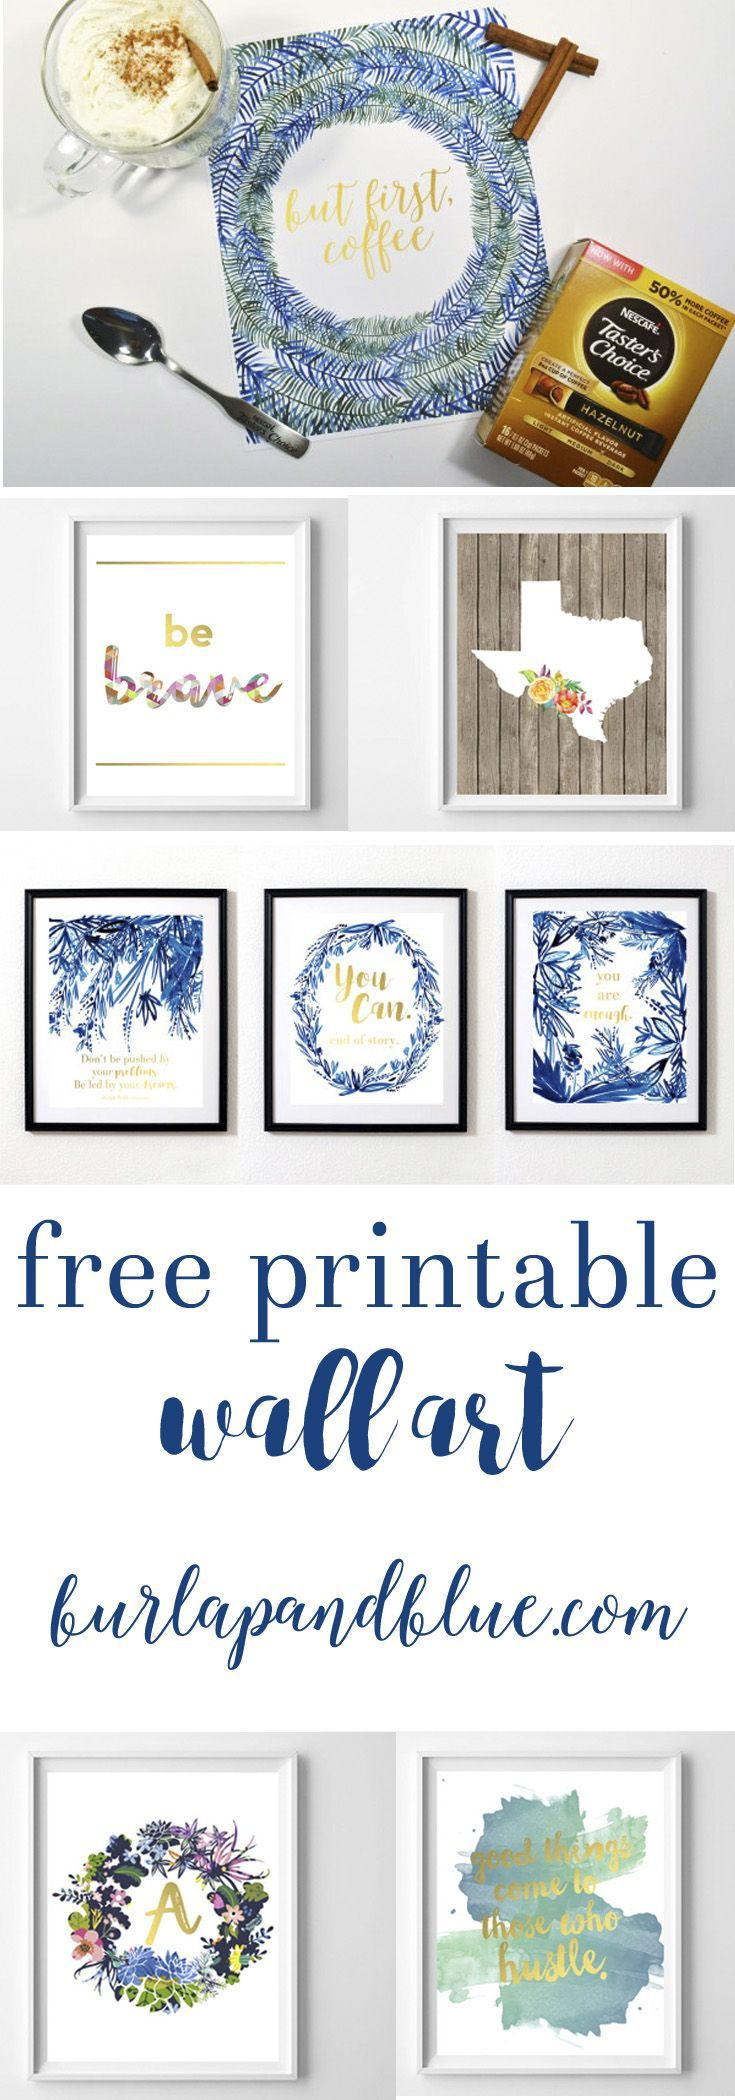 best images about home deco on pinterest diy home decor